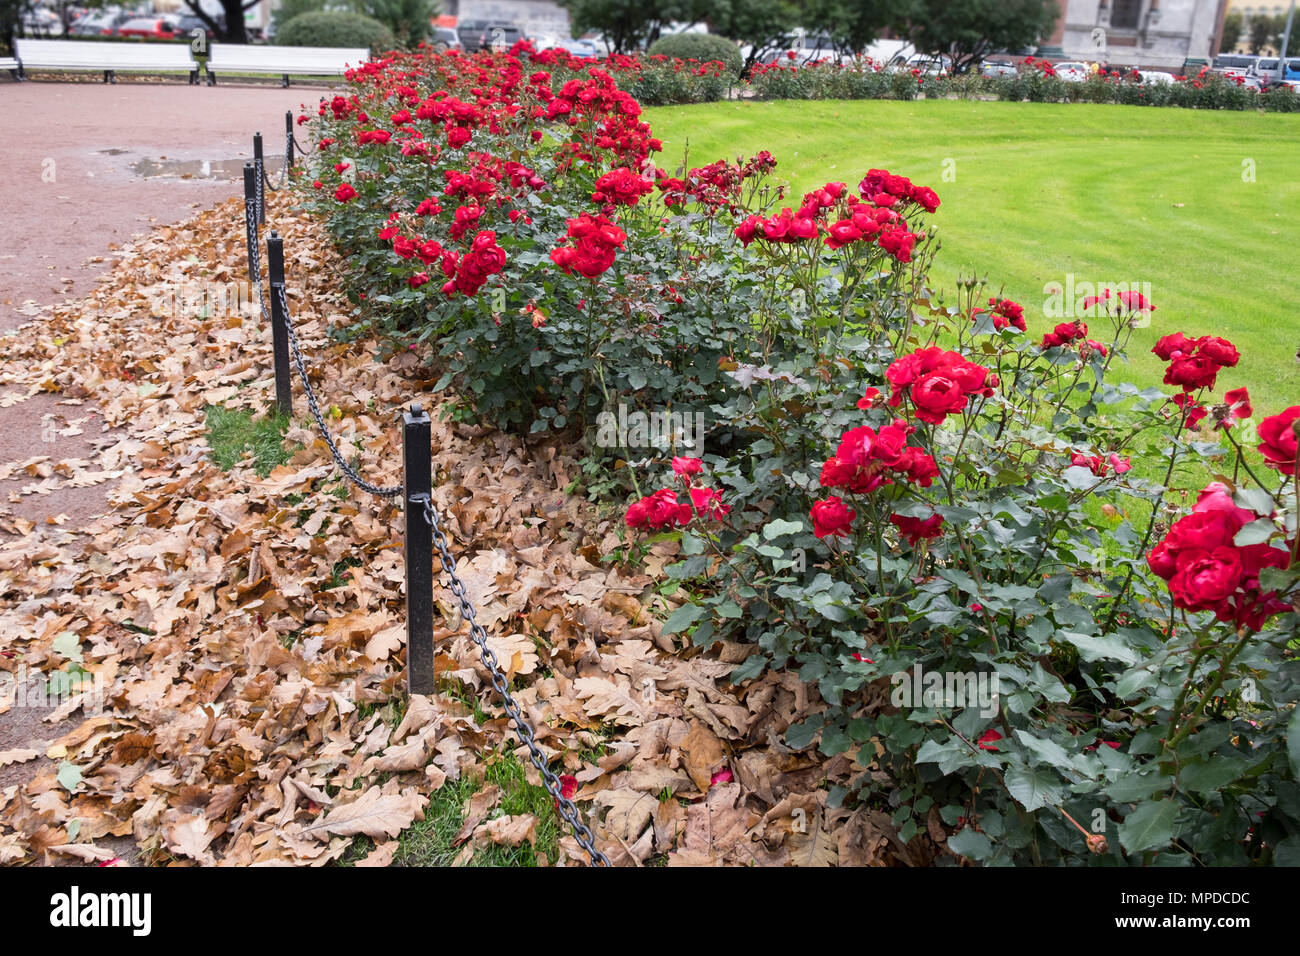 Blooming red roses bushes with beige dry oak leaves in public park. Green lawn behind the flowers. Autumn city contrasts. Urban street on background. - Stock Image